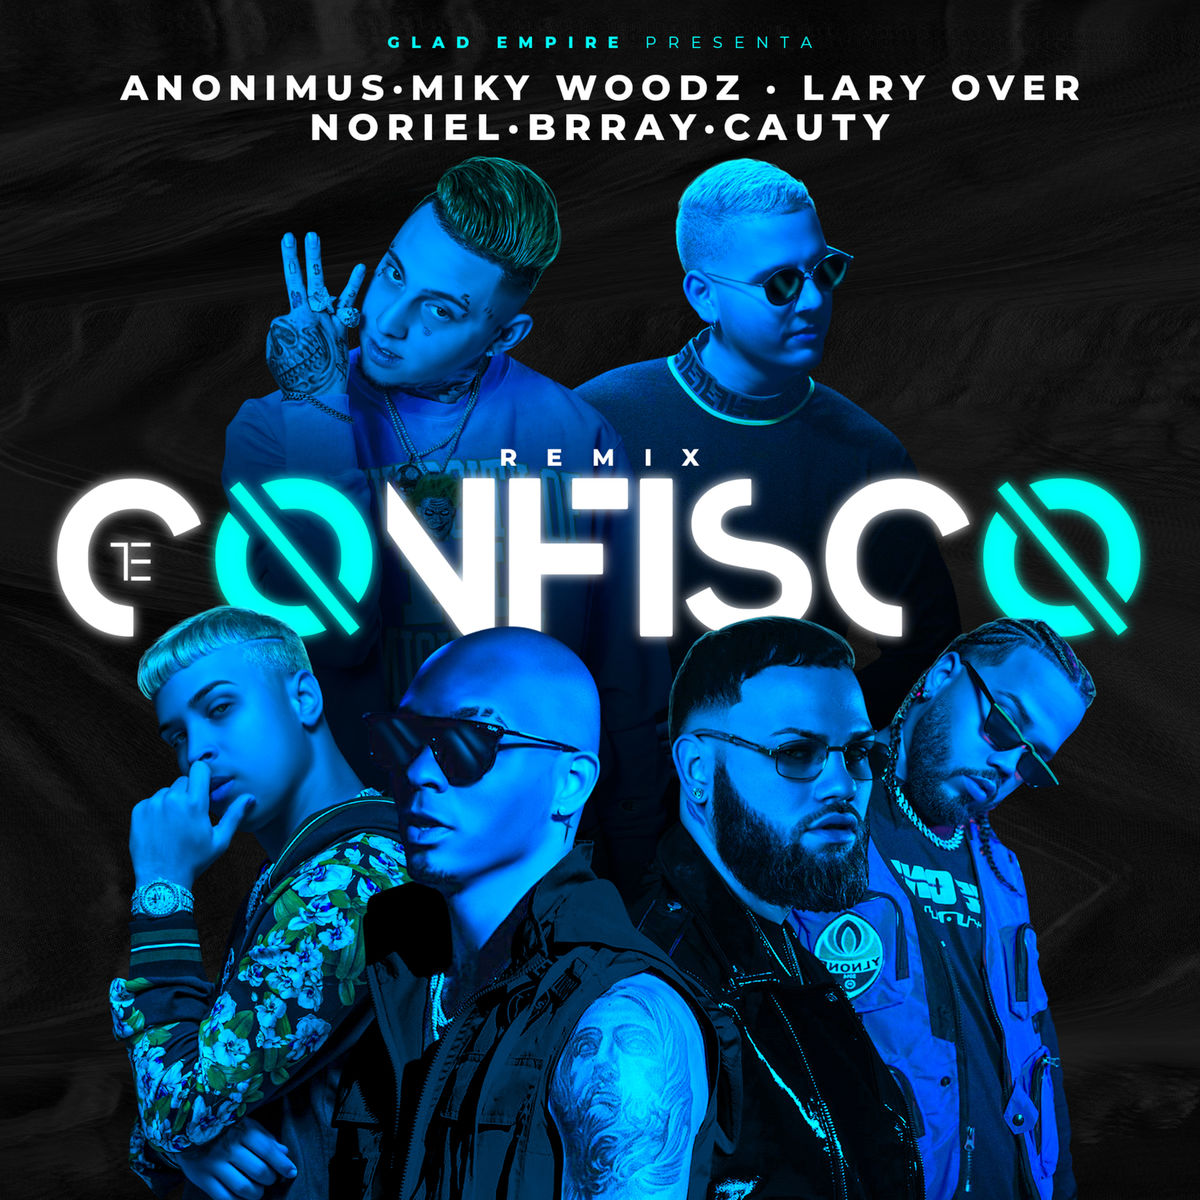 Anonimus Ft Miky Woodz, Lary Over, Brray, Noriel Y Cauty – Te Confisco (Remix)